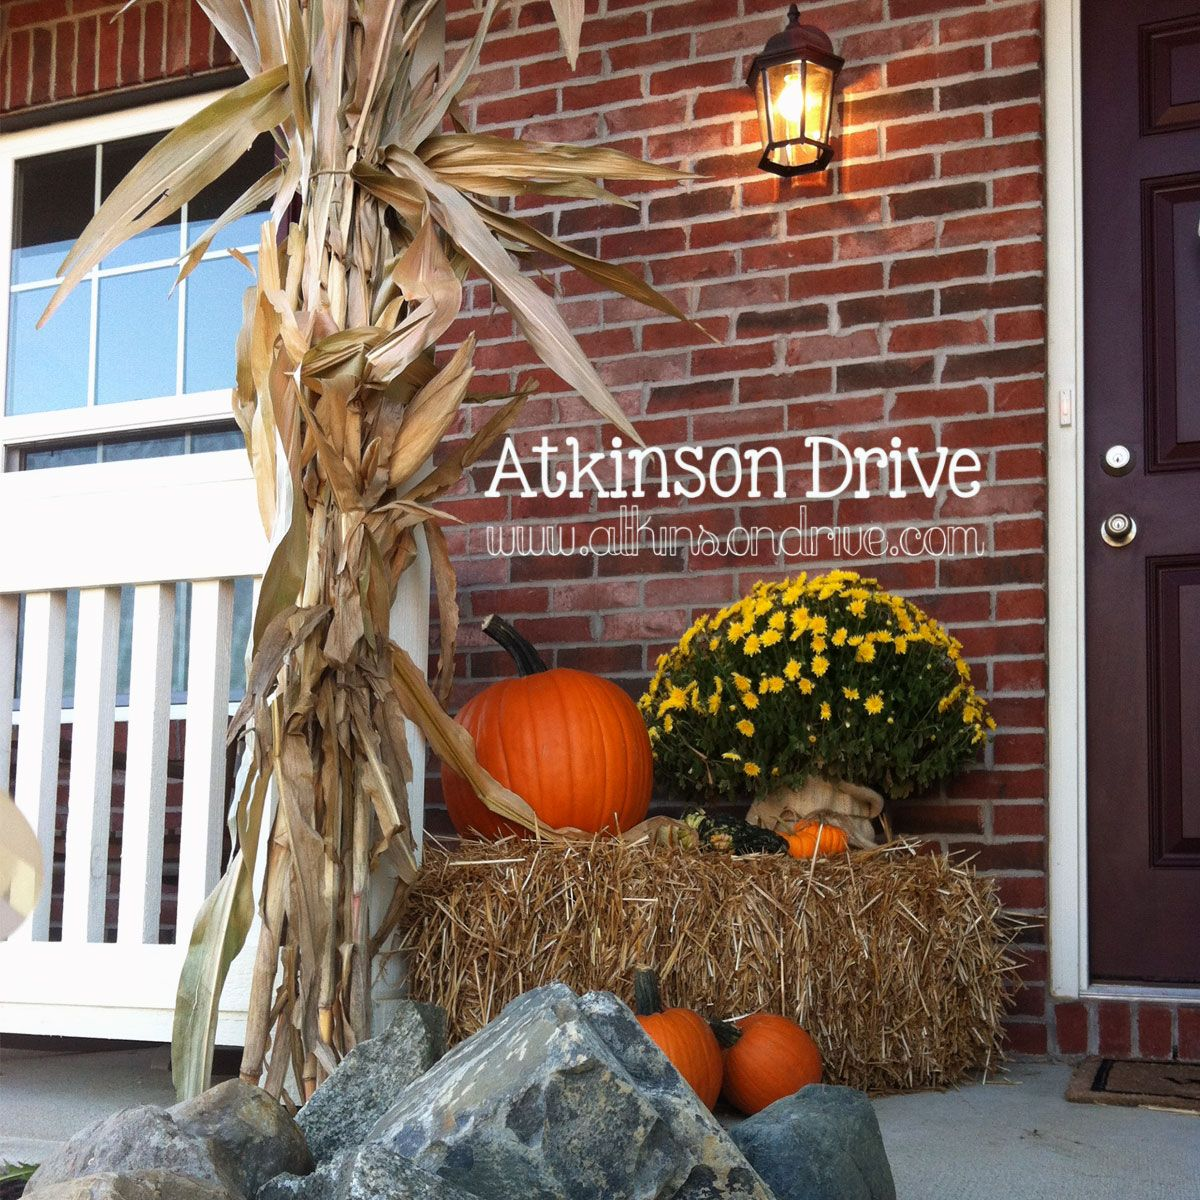 Autumn Yard Decorations: Decorating, Decoration And Holidays